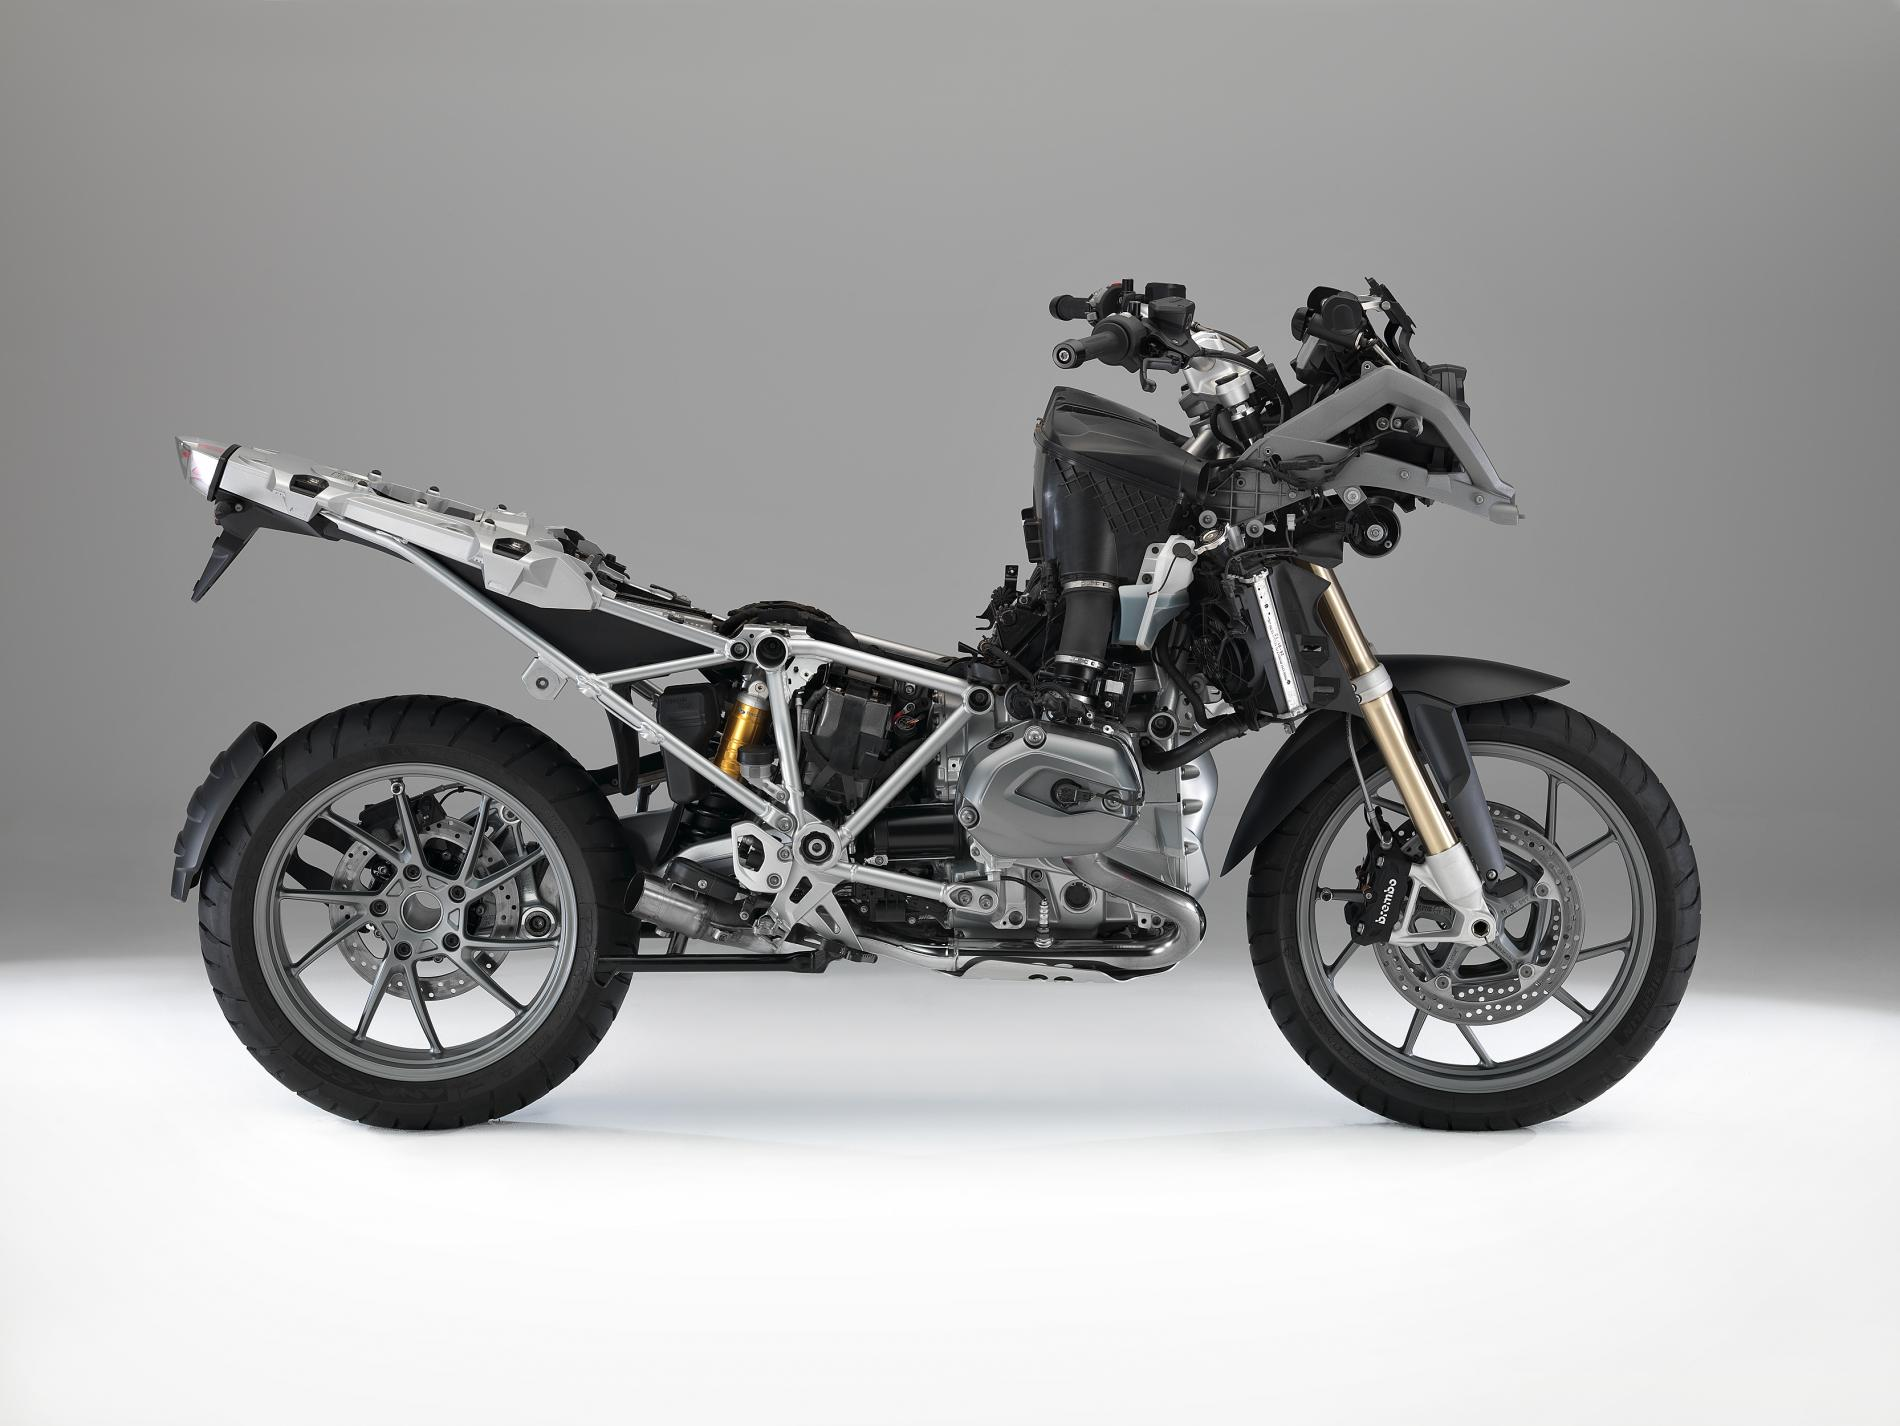 BMW R1200GS images #145783